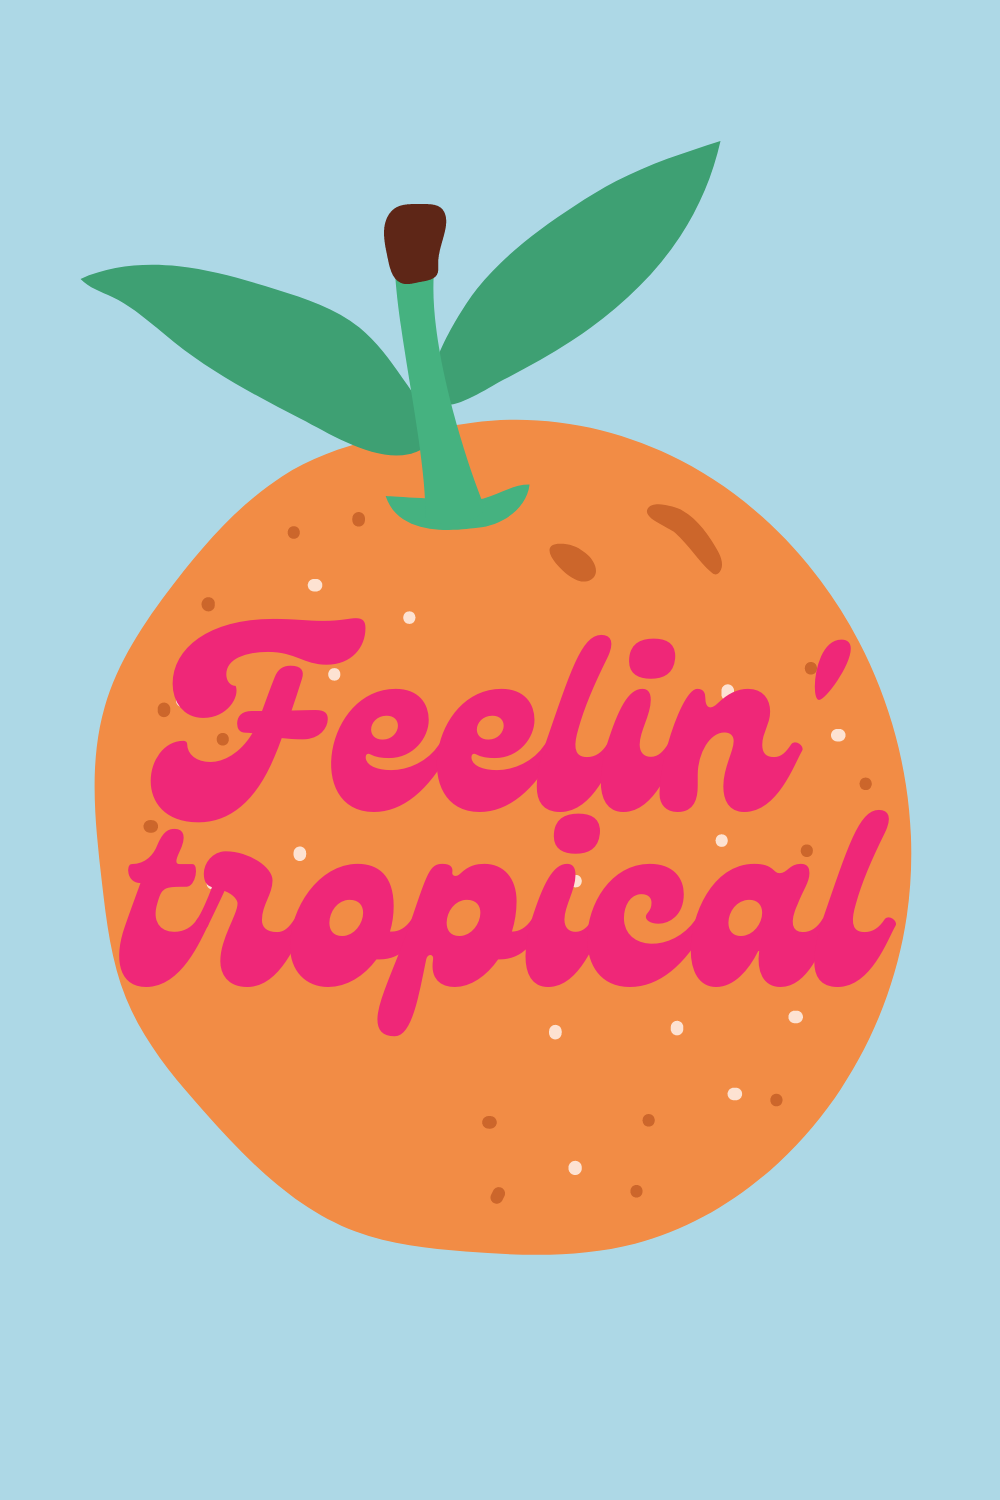 Feeling tropical quotes with cute orange quote image